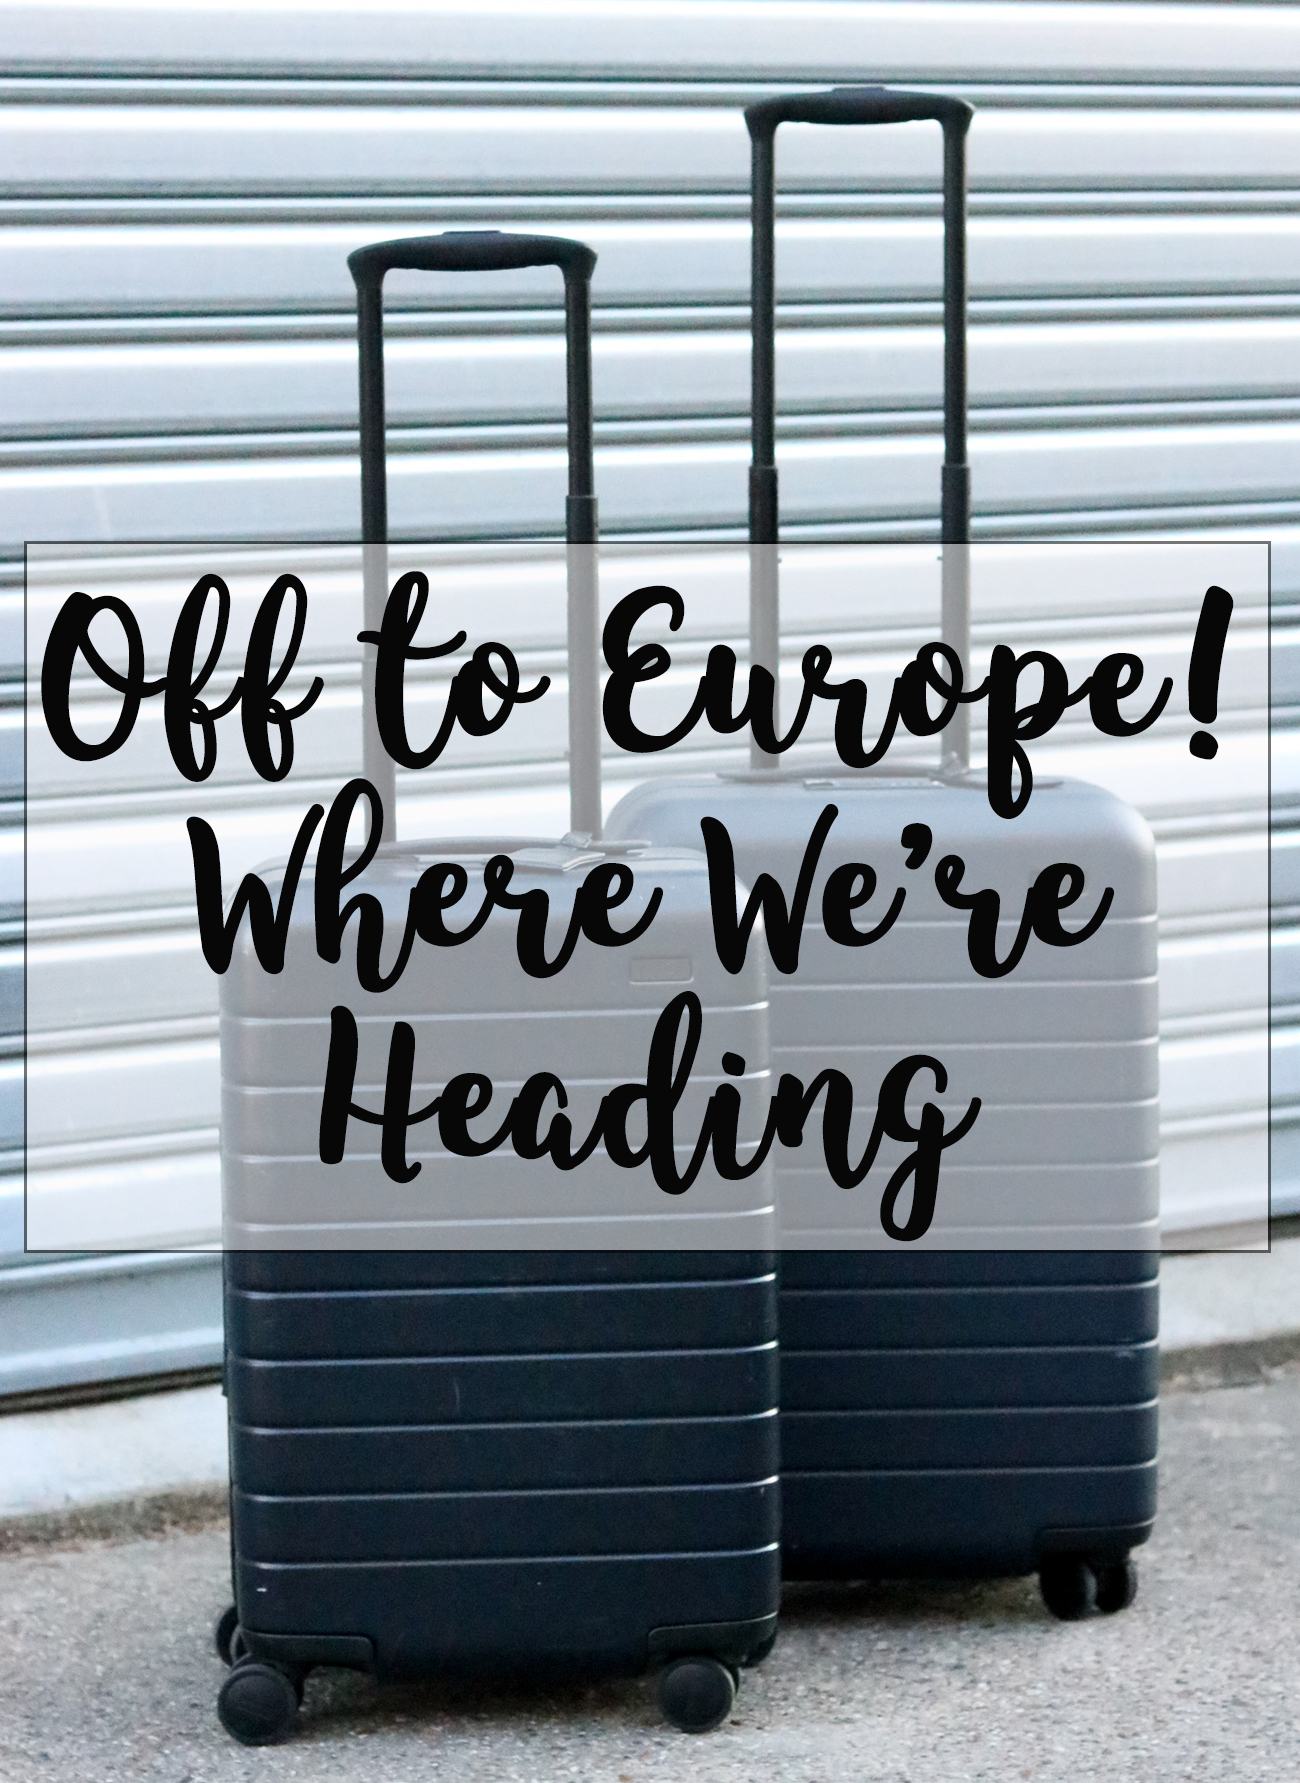 Europe Trip - Where We're Heading